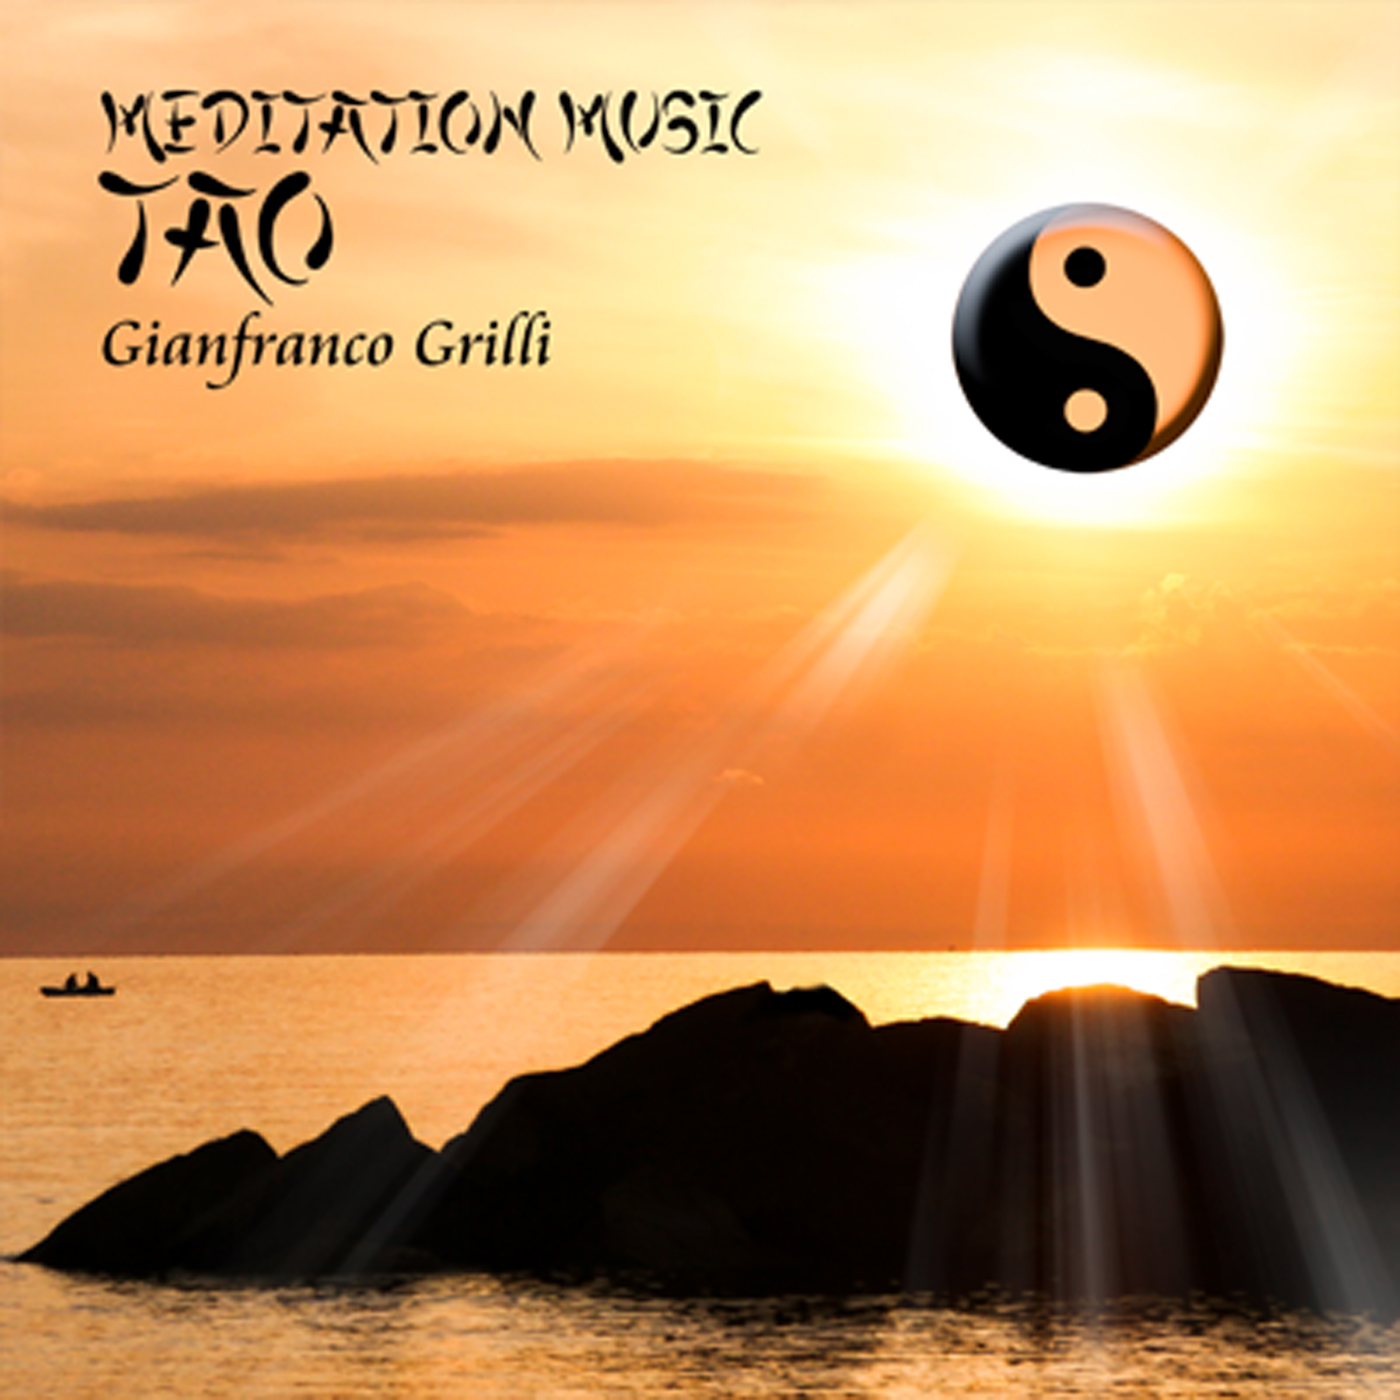 Meditation Music - Tao